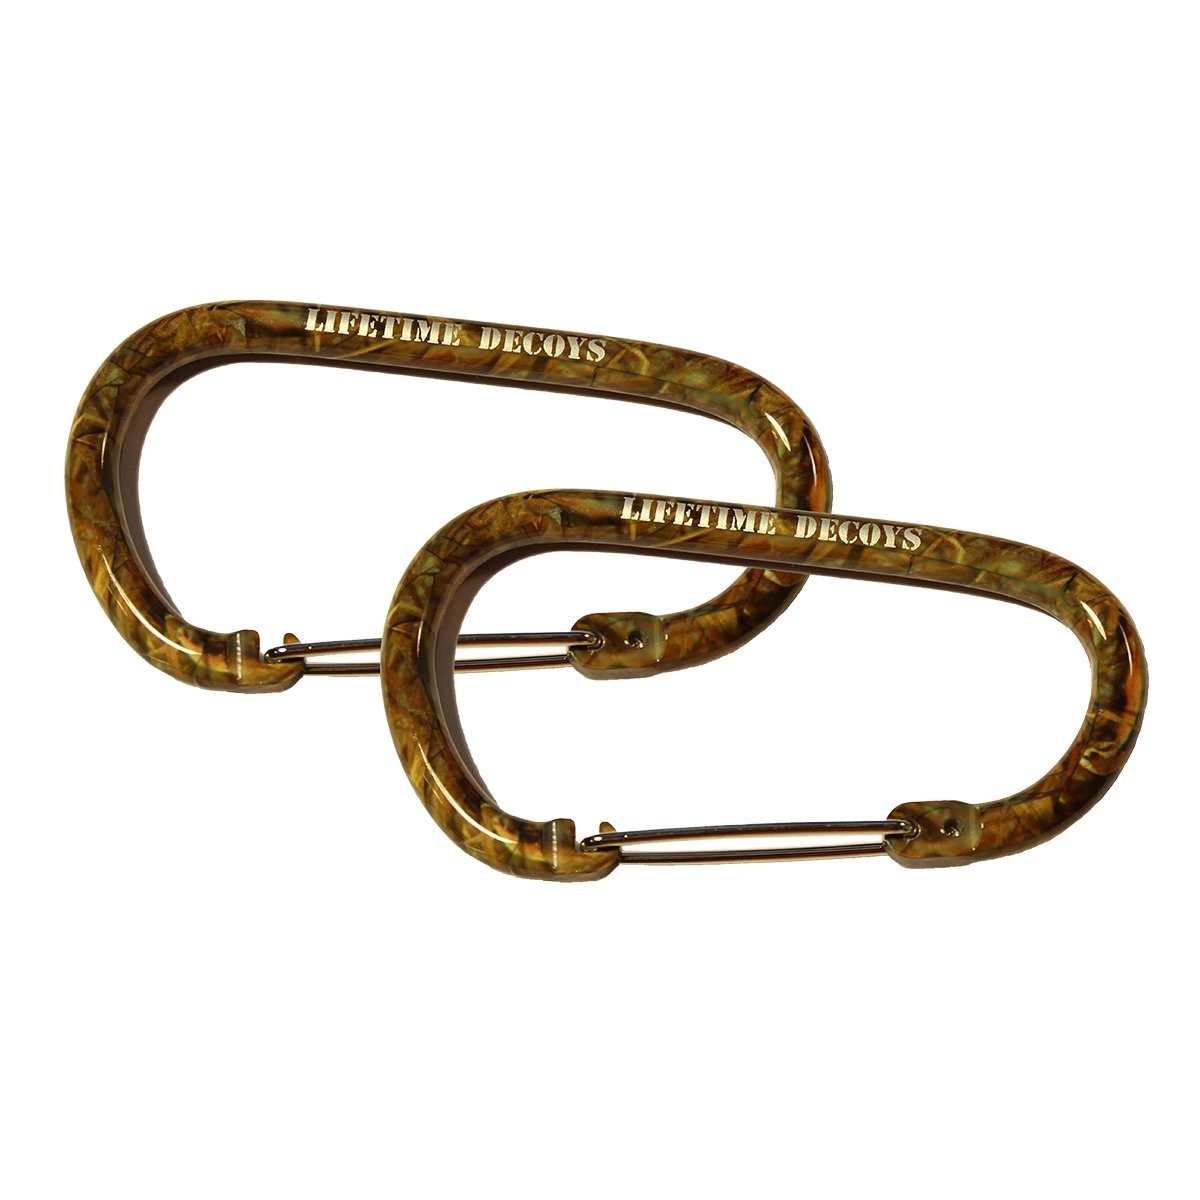 Lifetime Decoys 2 Pack Big Camo Carabiner